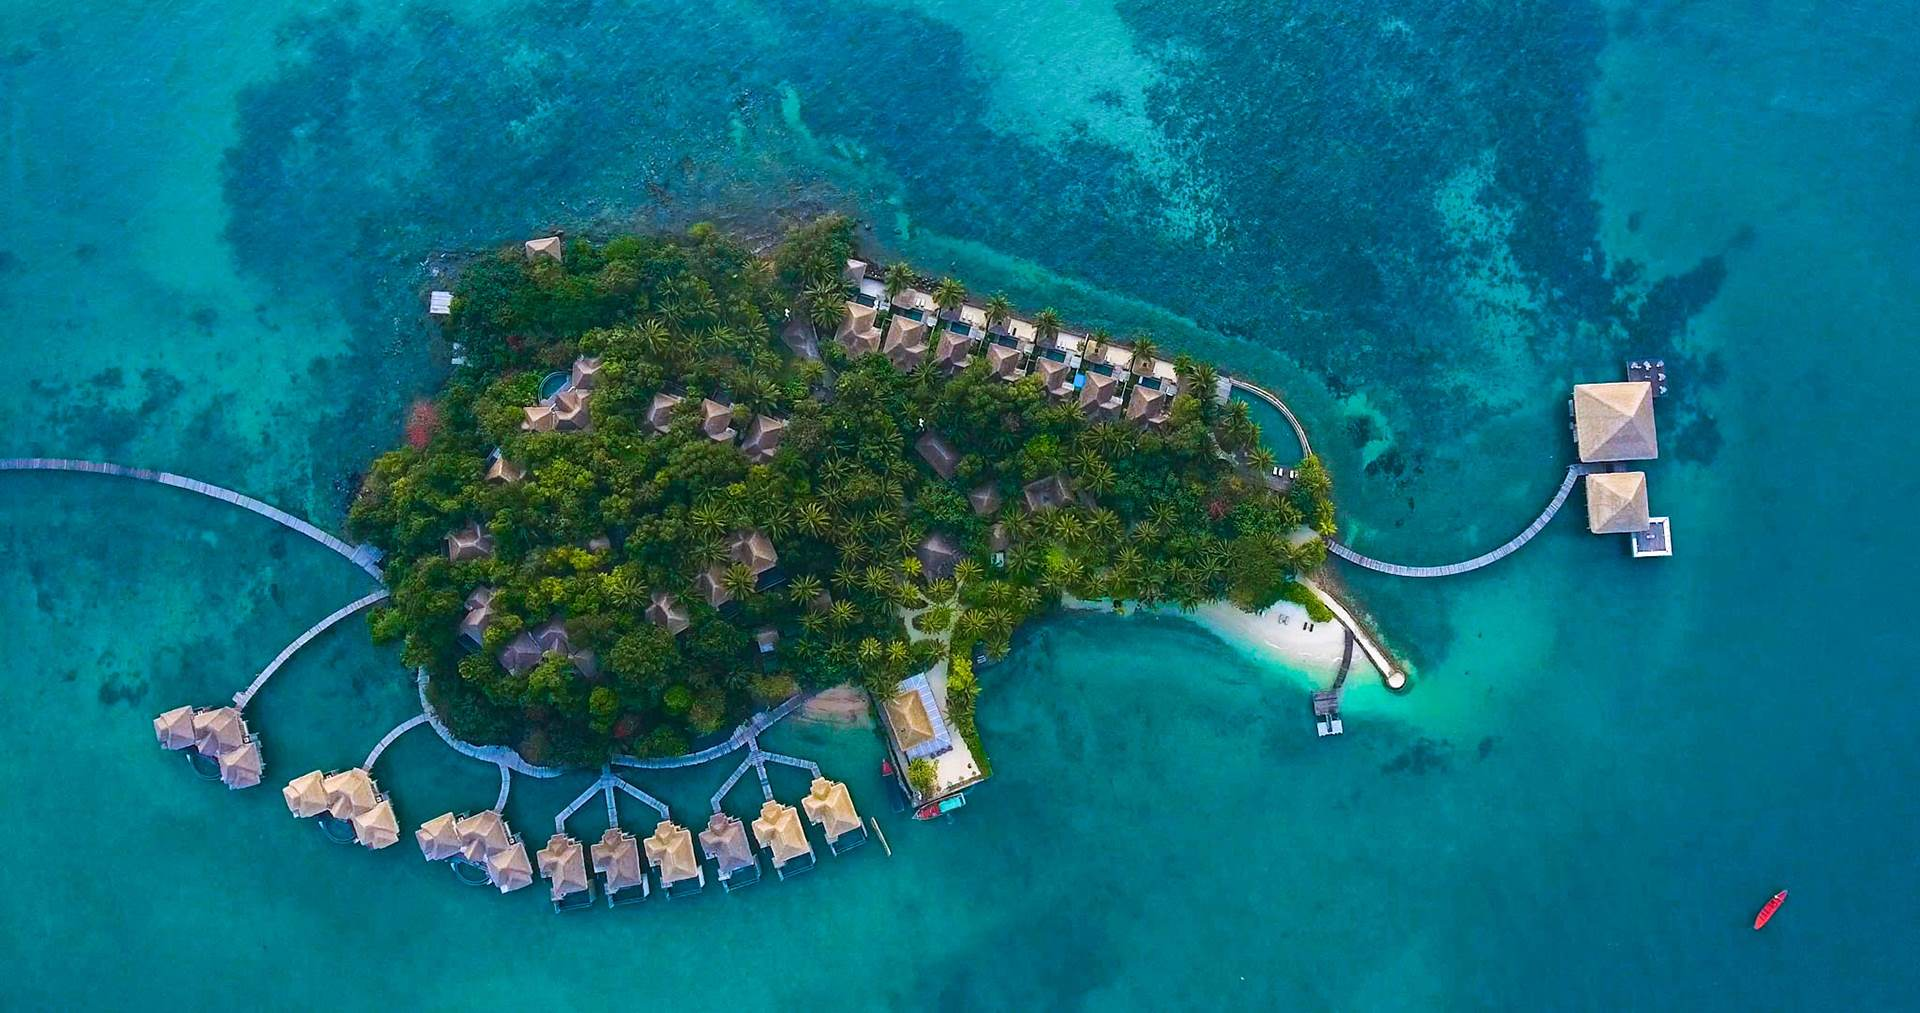 Song Saa Island from above